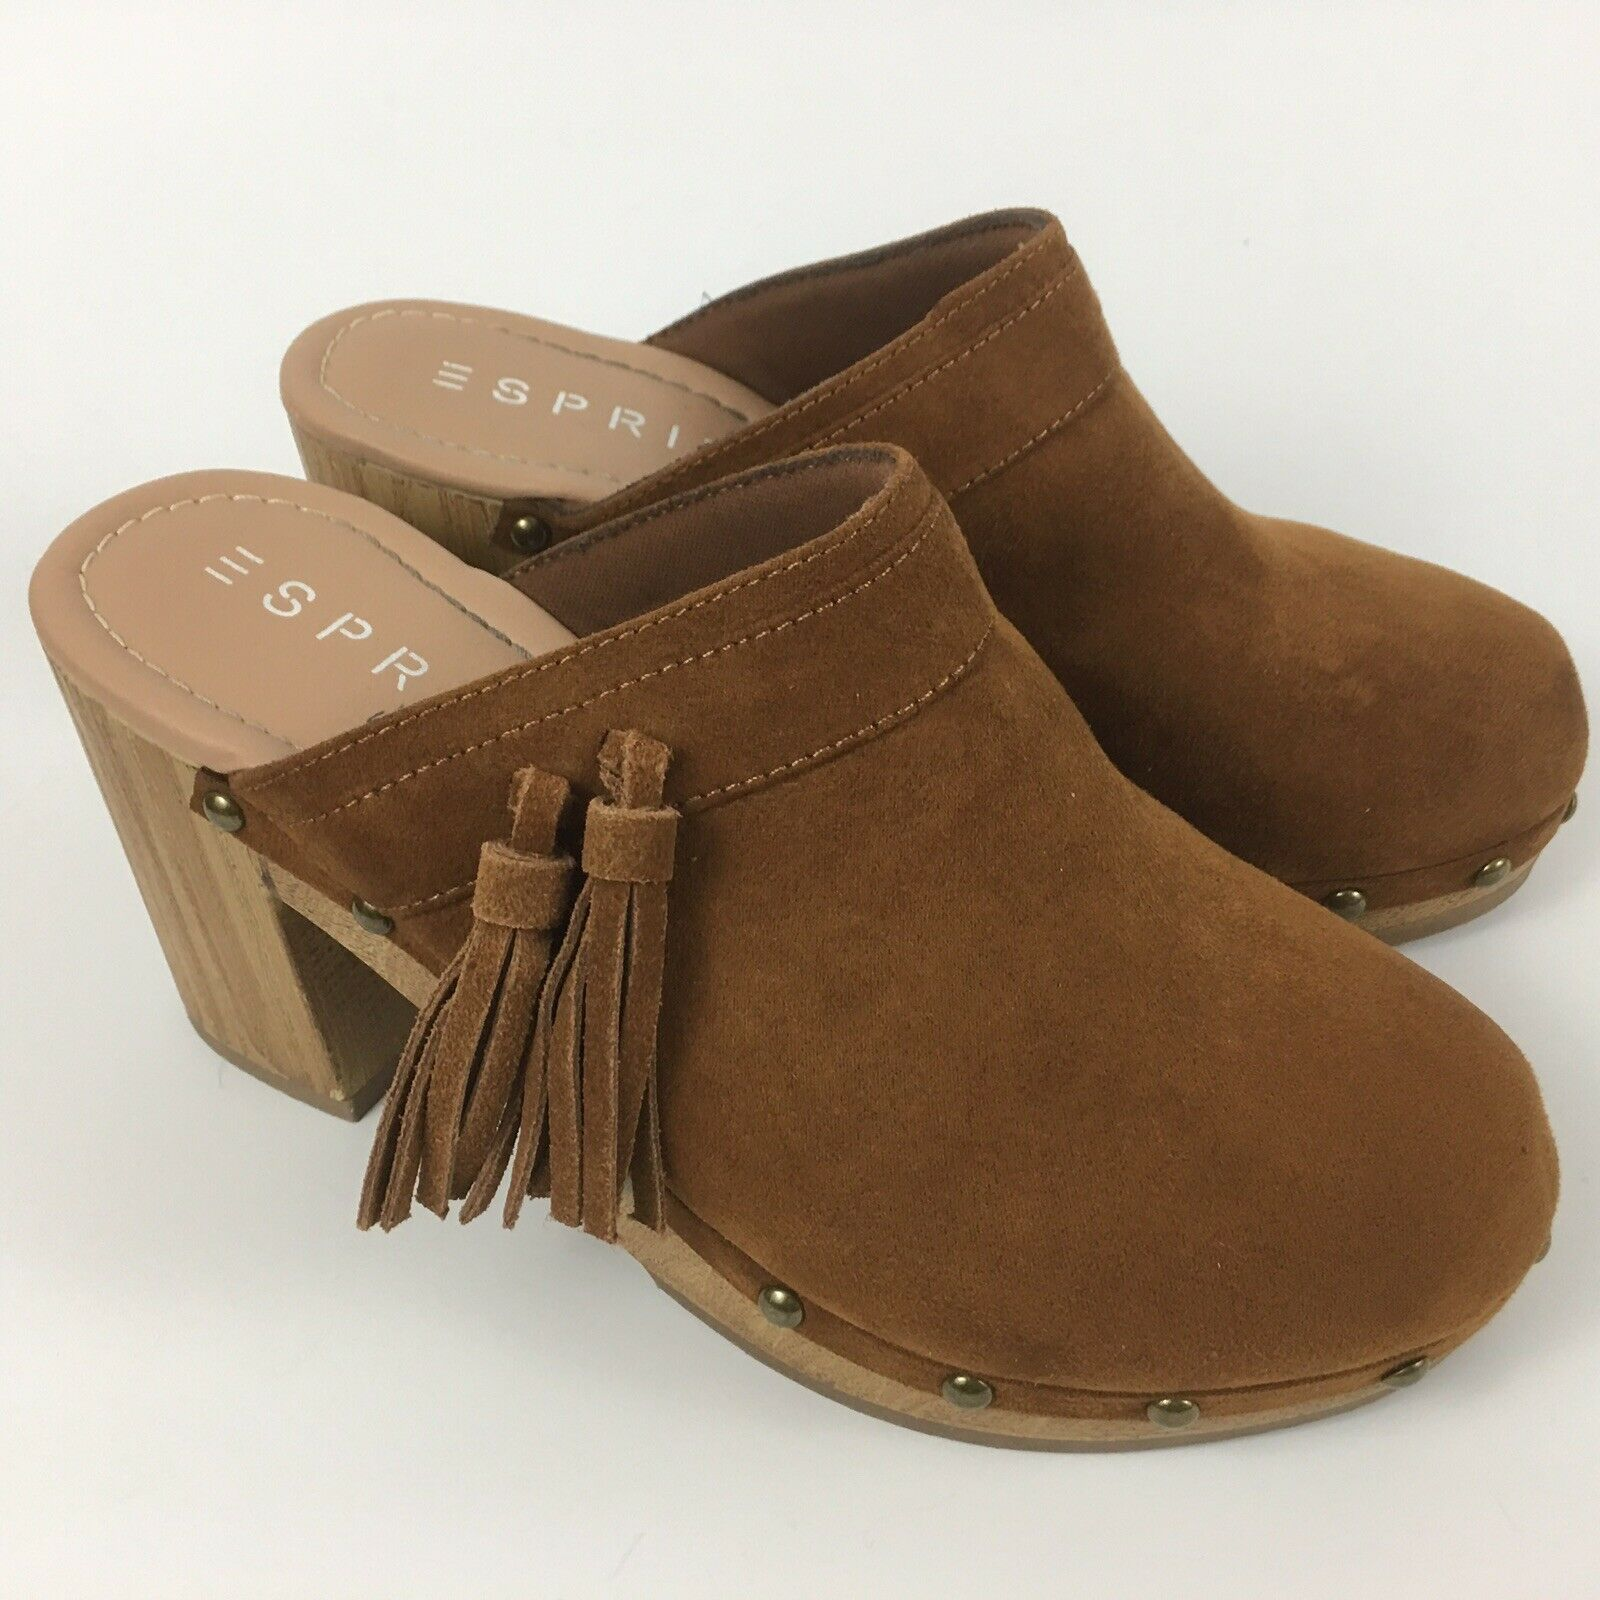 Esprit Womens Slip On Clogs Mules Size 6.5 Sam Brown Walnut Suede shoes Tassels